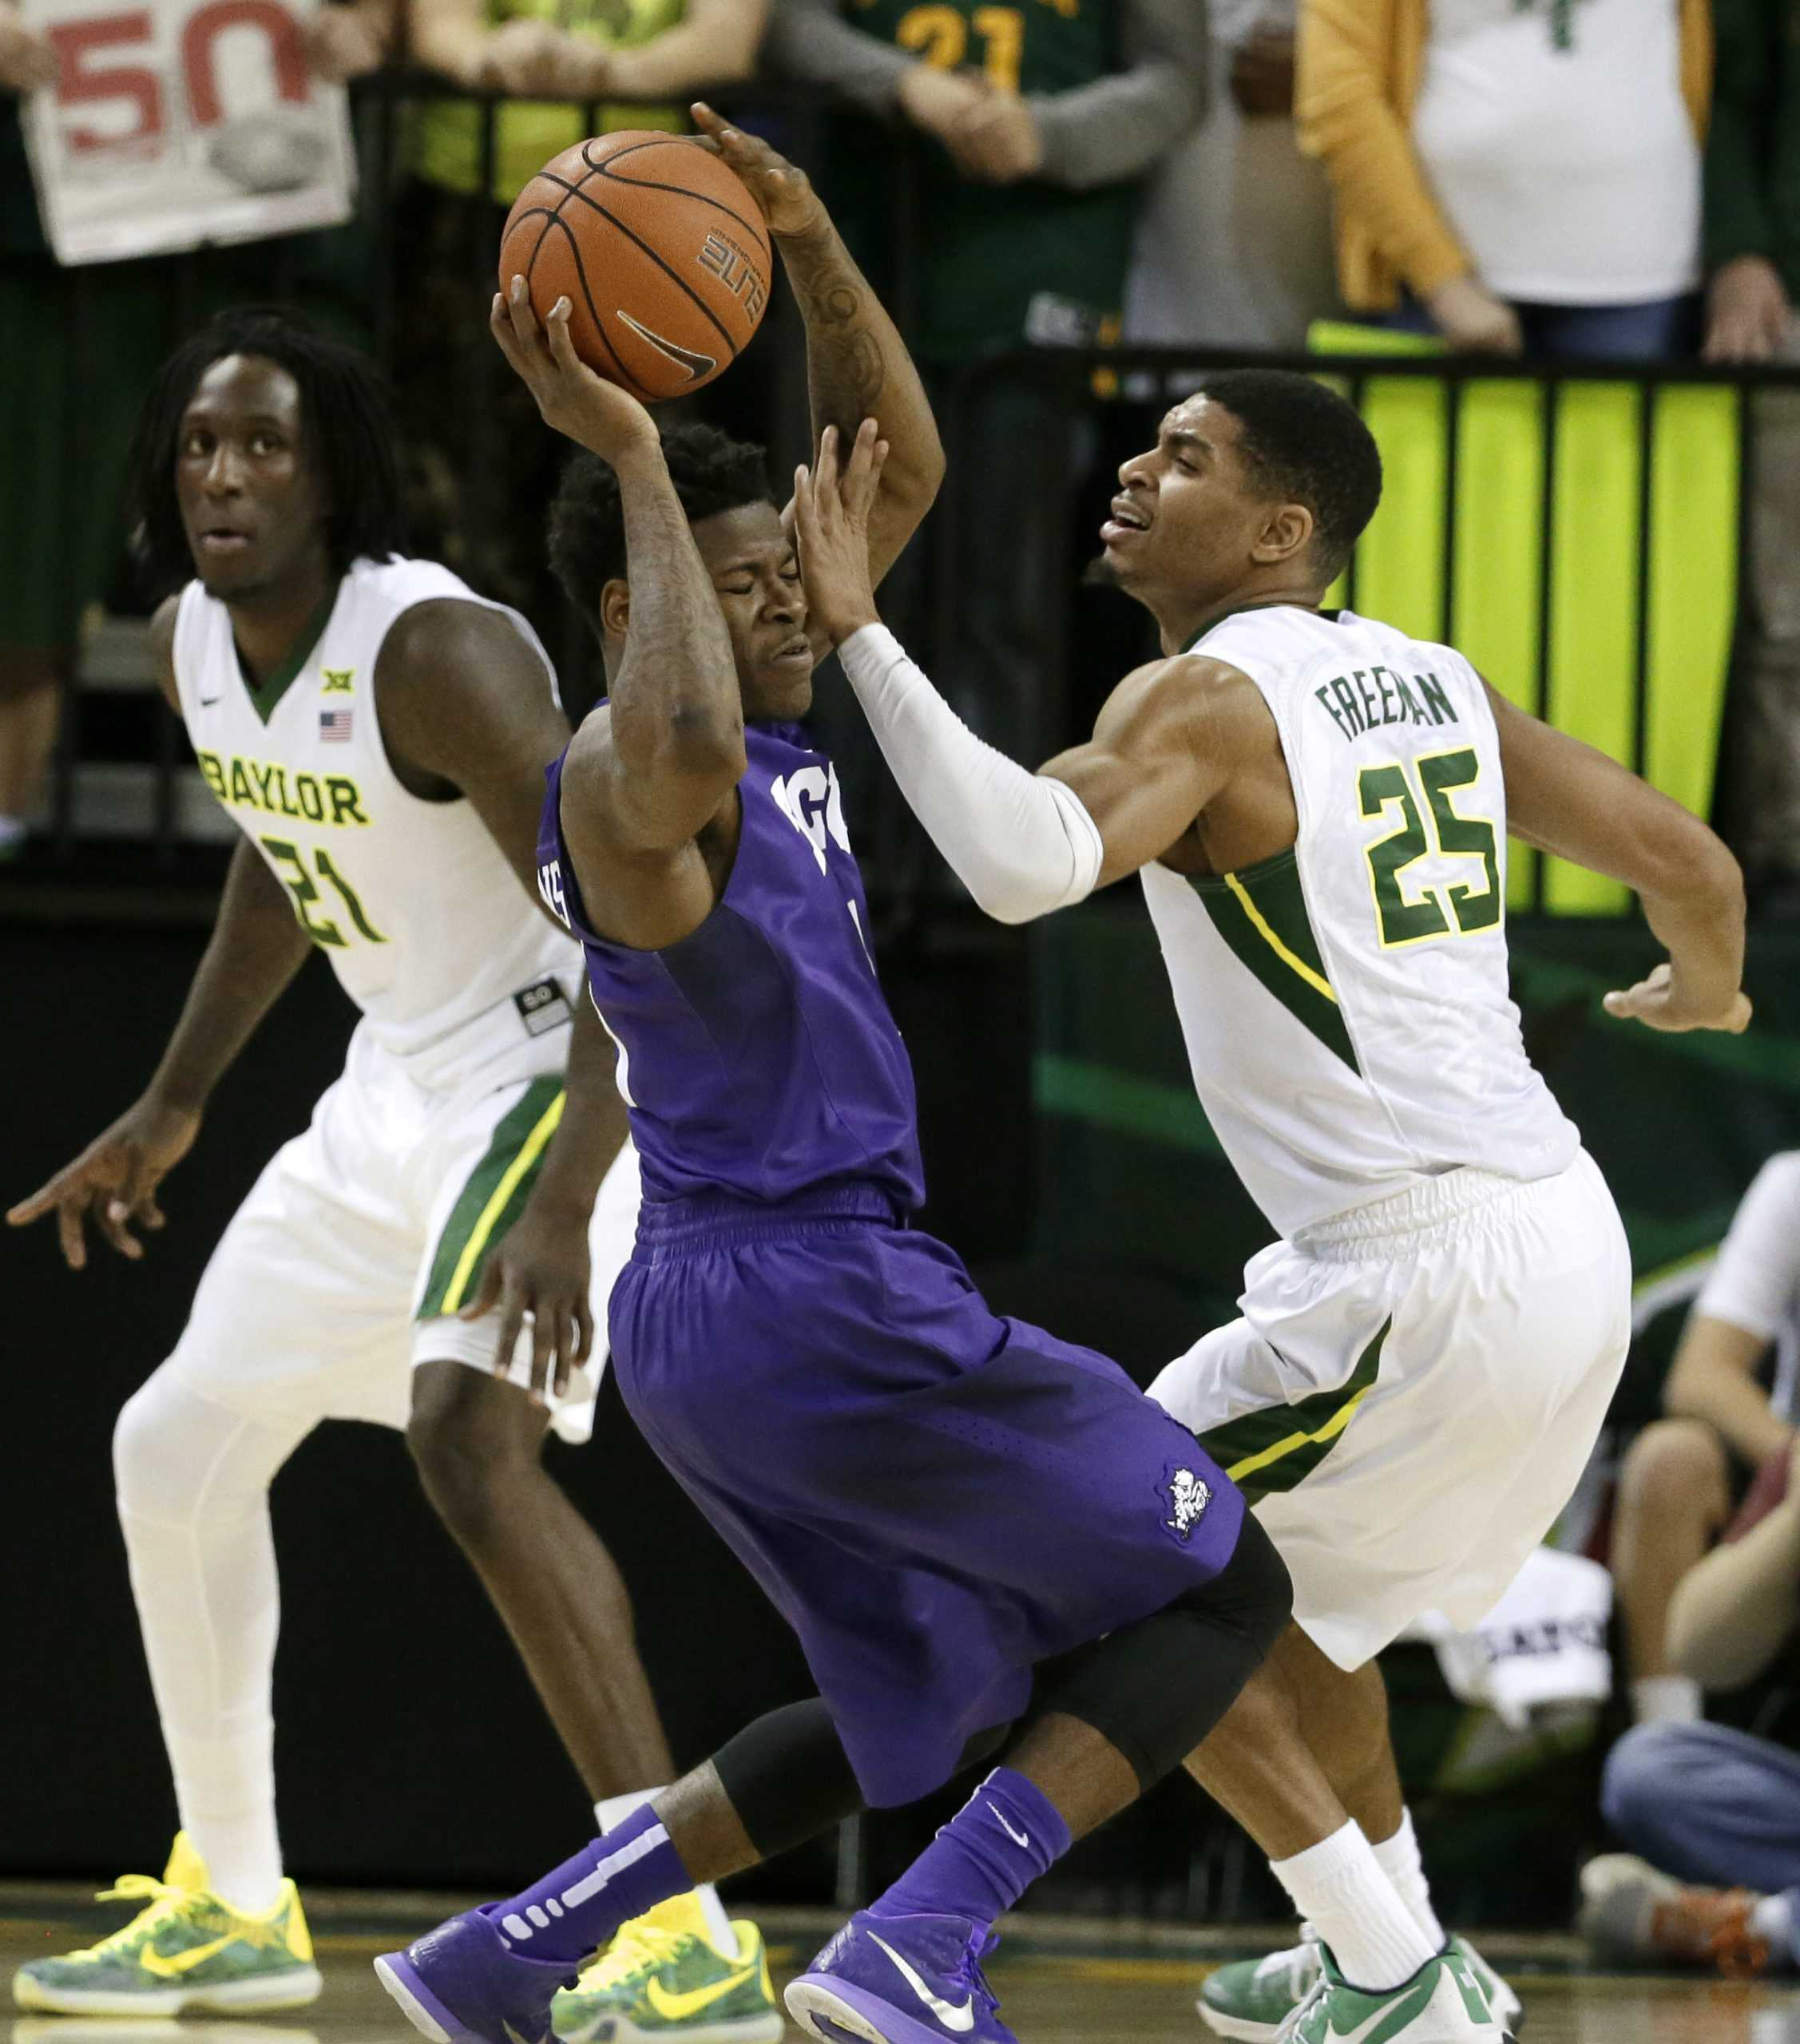 TCU's Chauncey Collins, center, attempts to get to the basket as Baylor's Taurean Prince (21) and Al Freeman (25) defend in the second half of an NCAA college basketball game, Wednesday, Jan. 13, 2016, in Waco, Texas. Baylor won 82-54. (AP Photo/Tony Gutierrez)